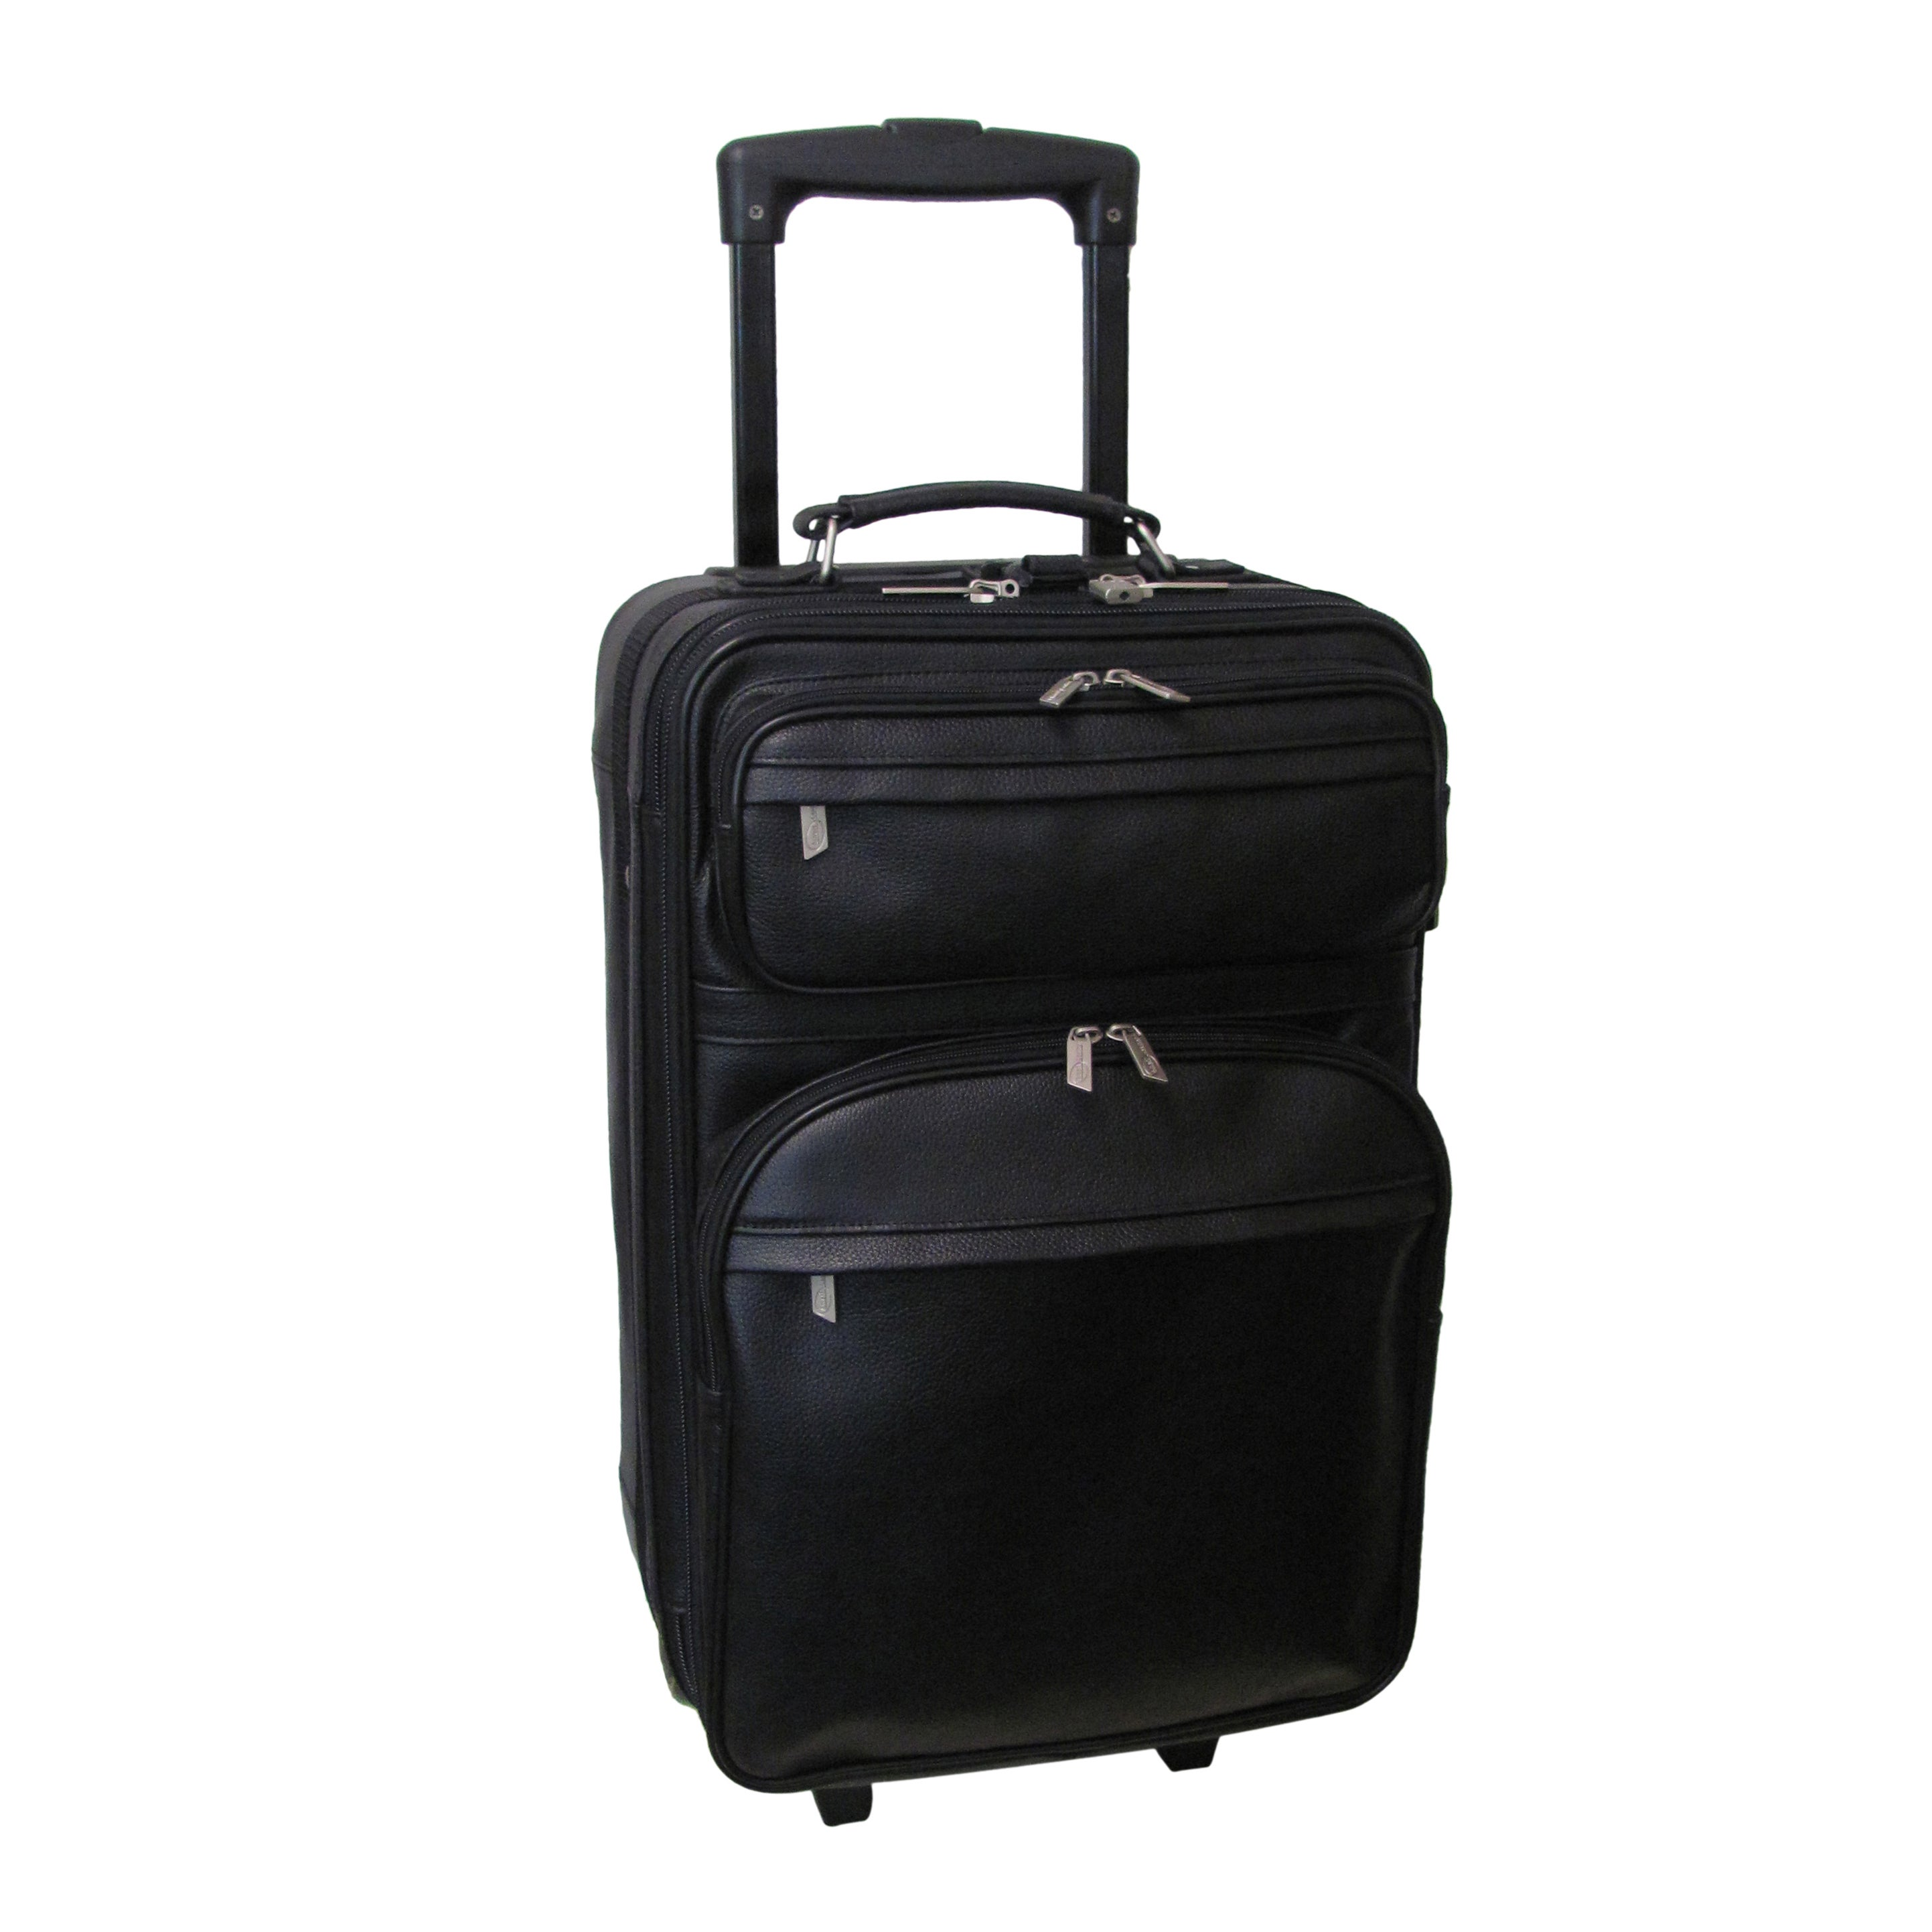 aluminum alloy edging 2 sizes ava adjustable lever ABS//PC stylish small fresh retro glossy universal caster student large capacity password suitcase MING REN Luggage Sets Trolley case 4 colors